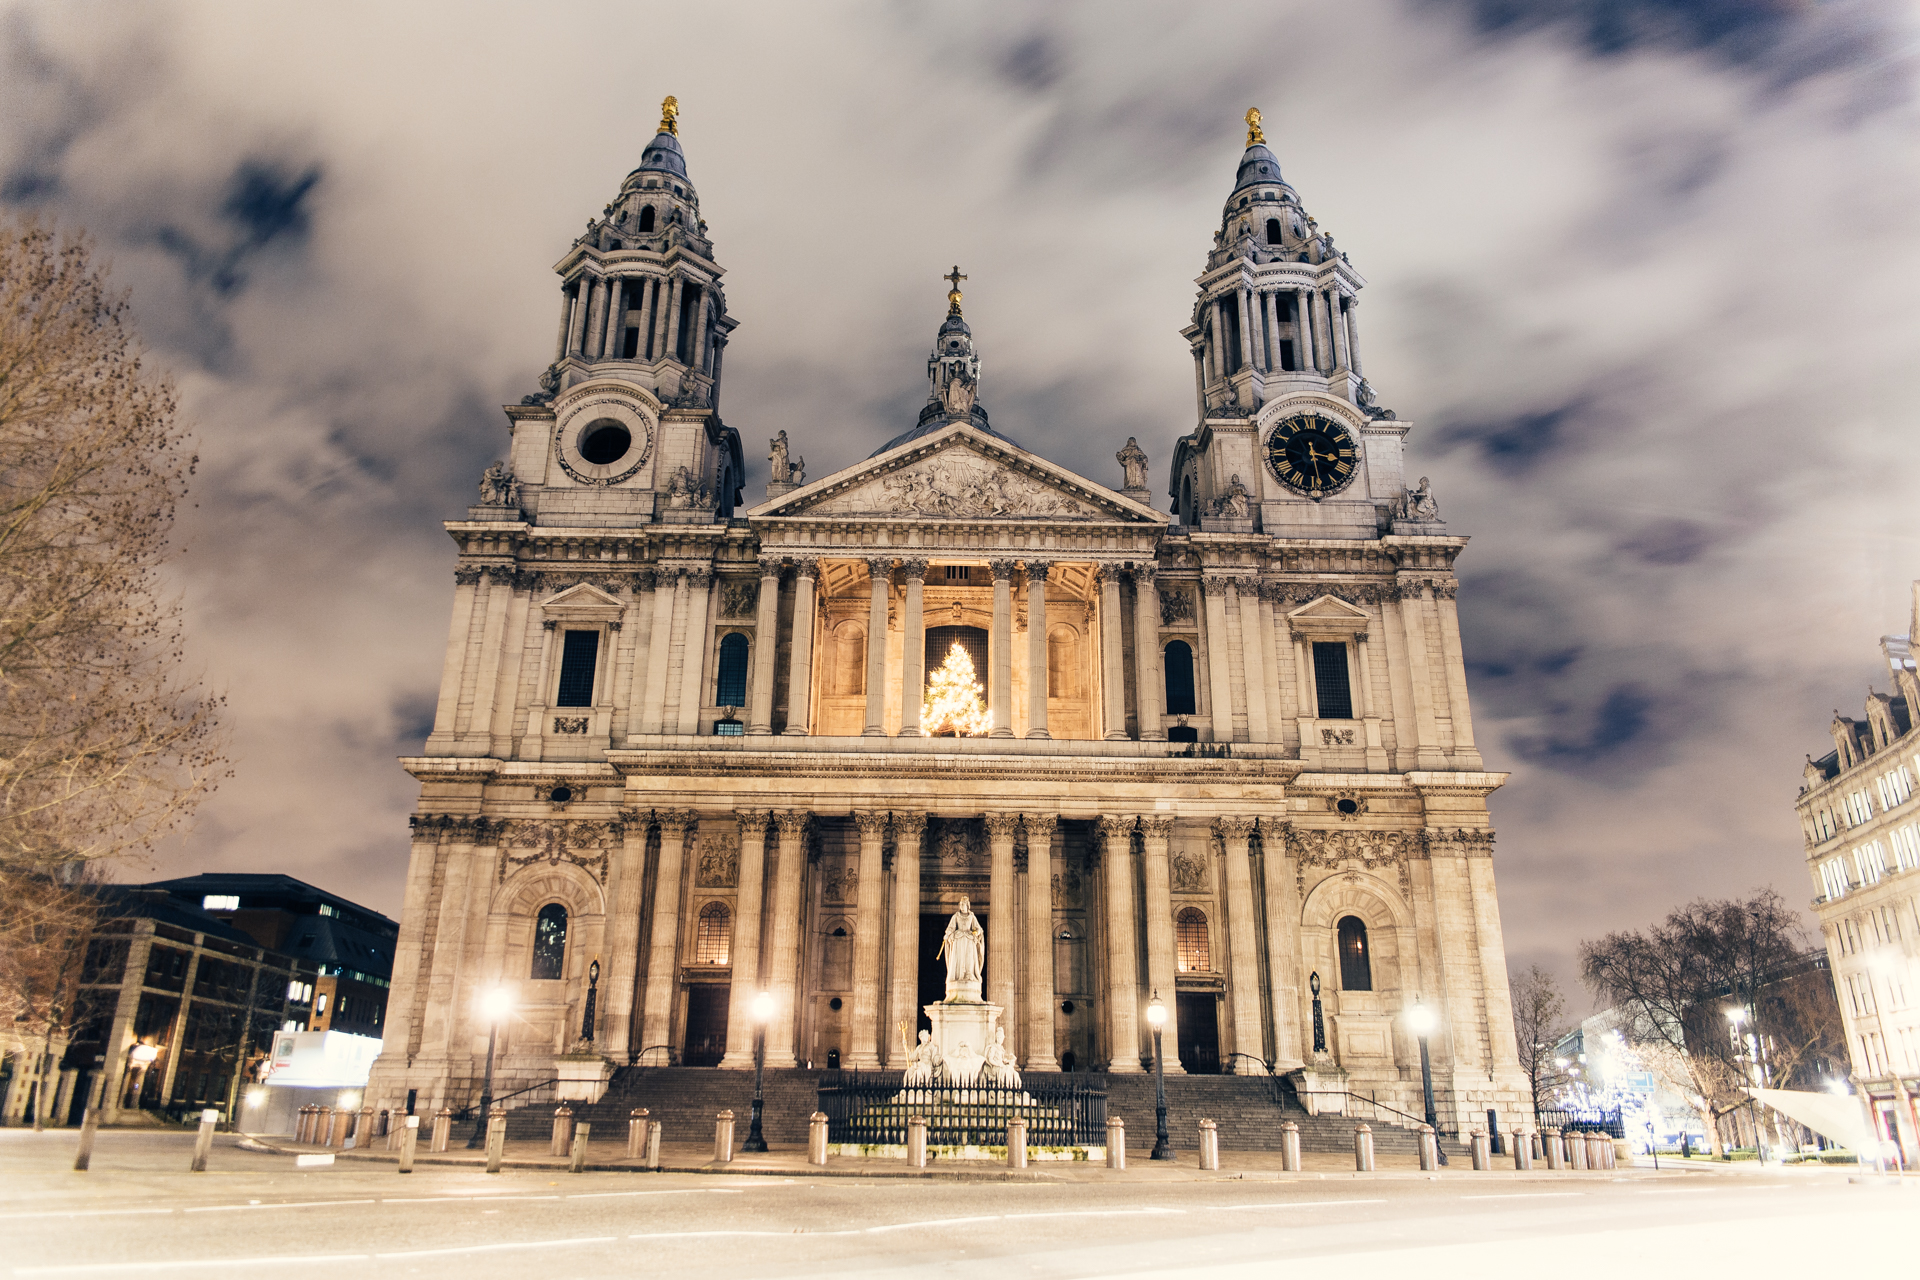 Desert in London - Saint Paul s Cathedral - Christmas 2015 - Genaro Bardy -3